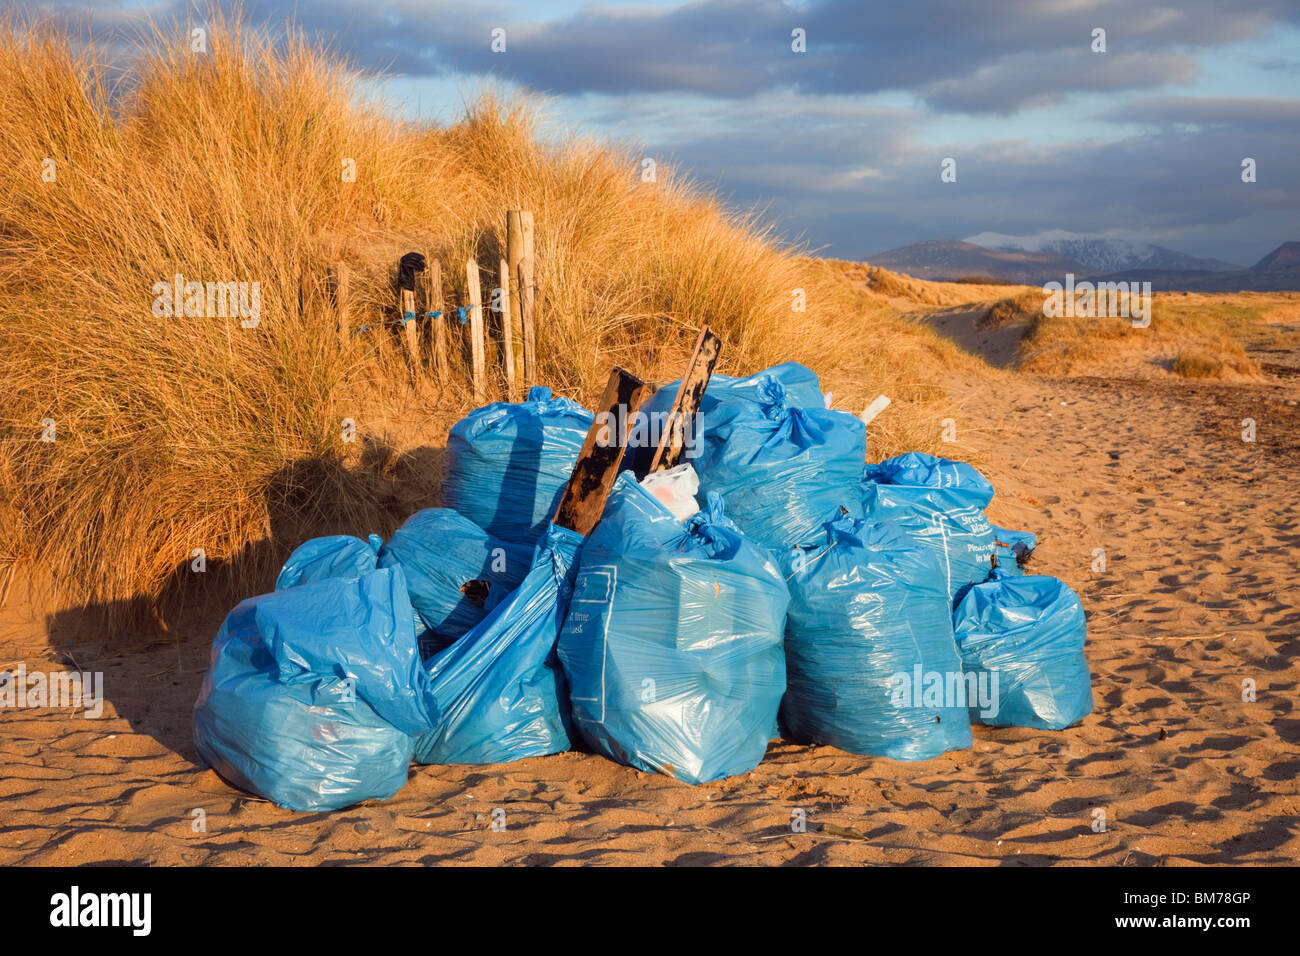 Bags of litter collected on a beach. - Stock Image